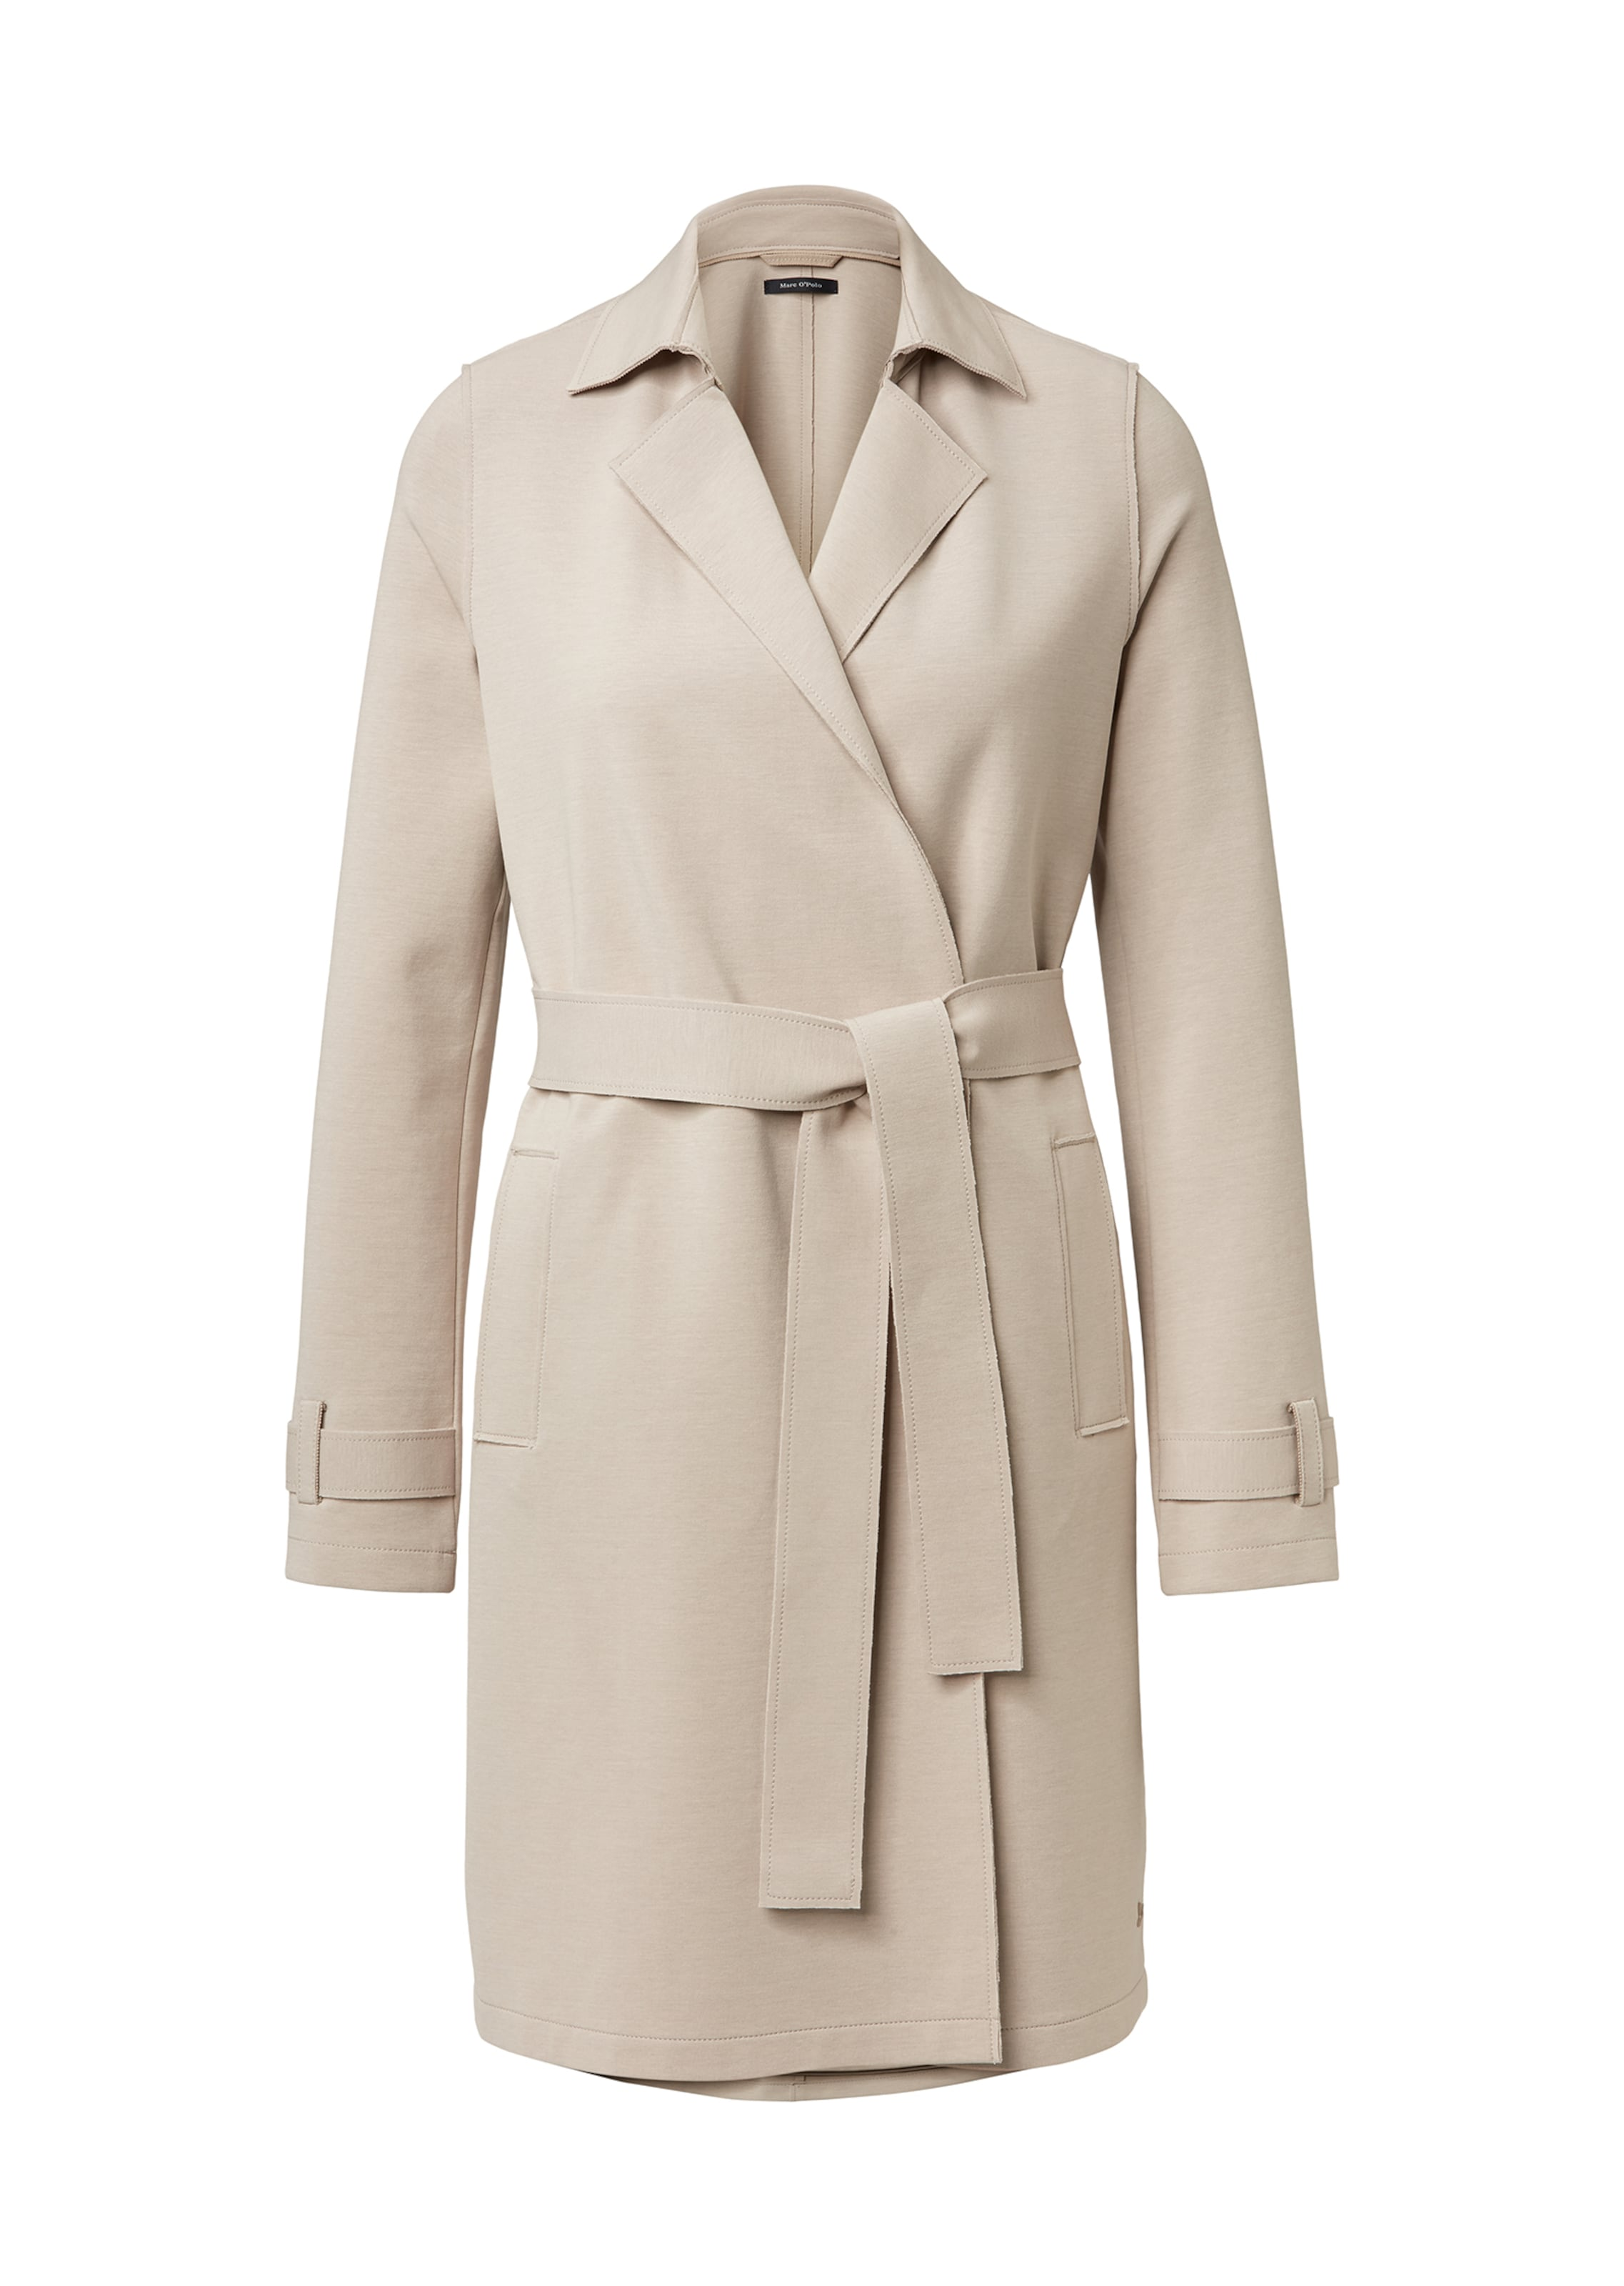 In Marc O'polo Hellbeige Trenchcoat Qshtrd